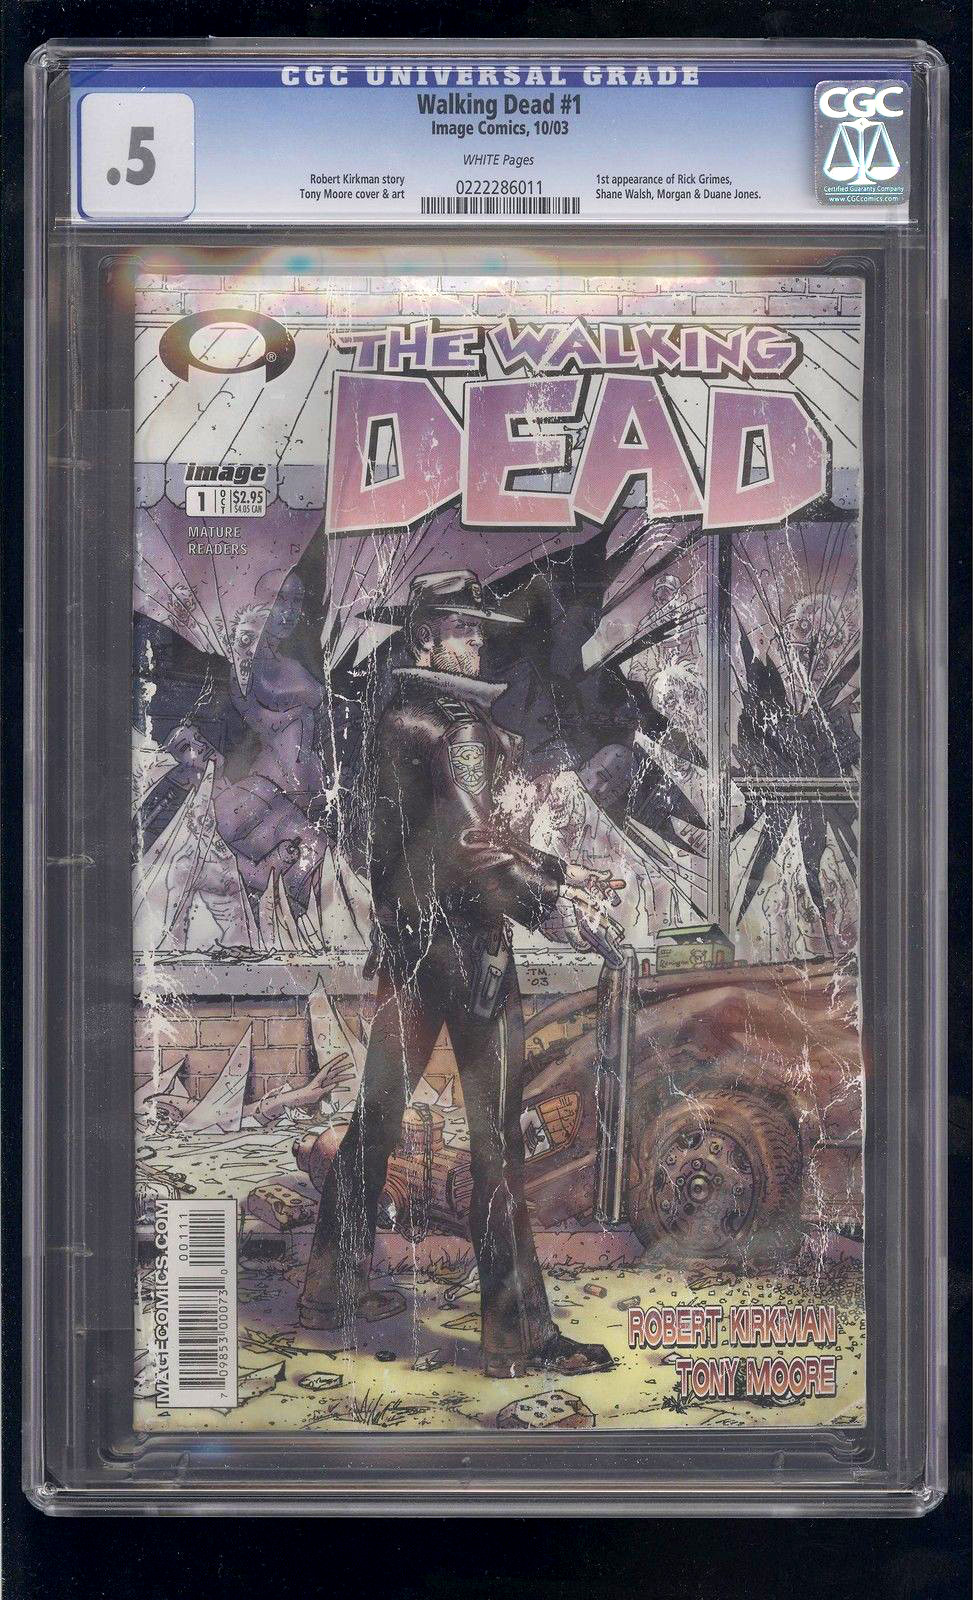 The Walking Dead CGC .5